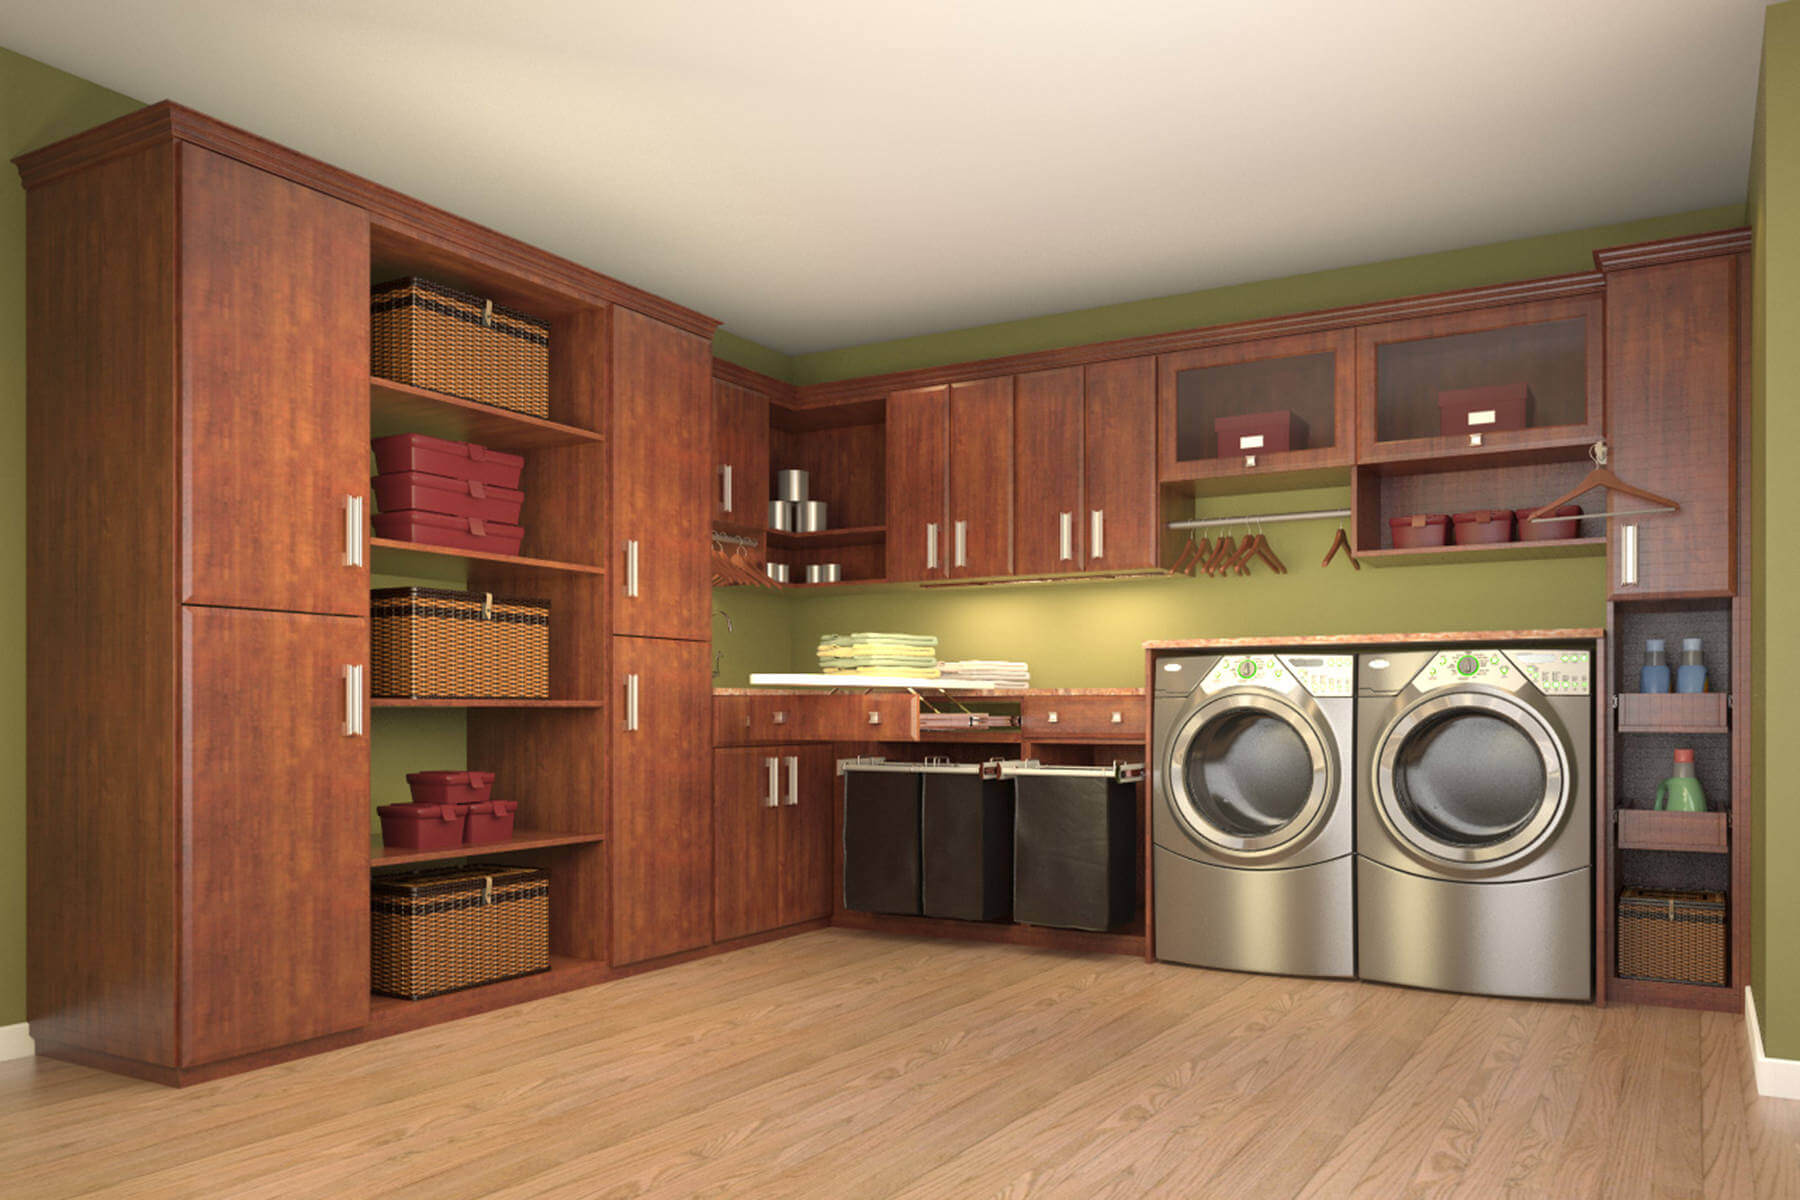 Dedicated spacious laundry room